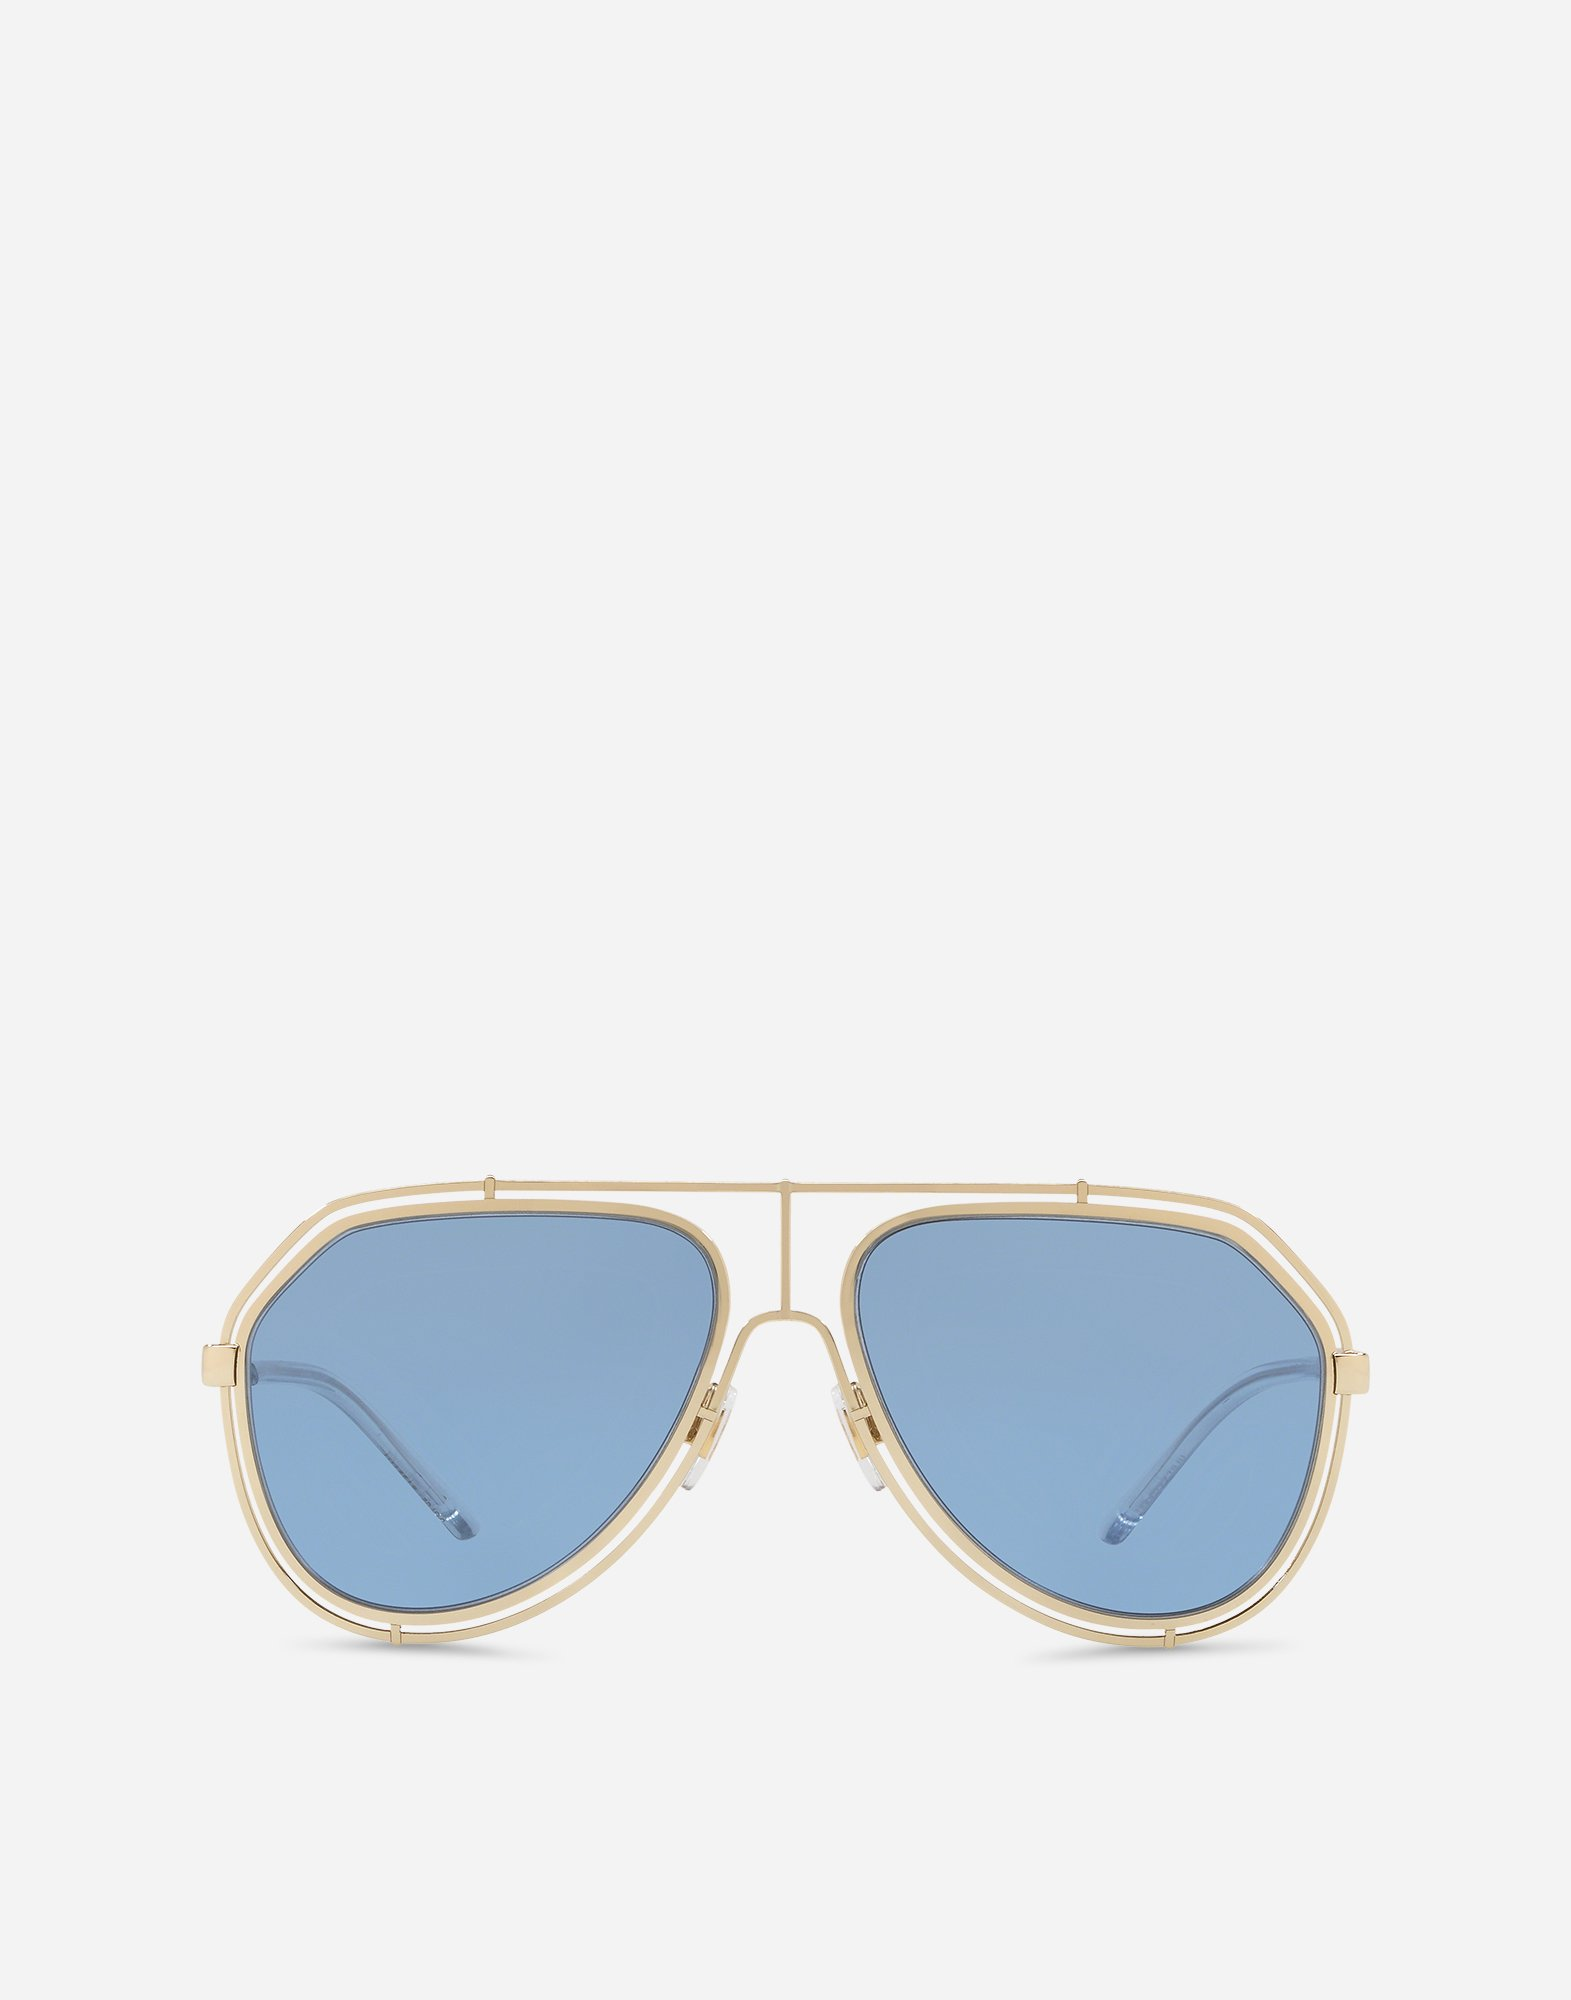 METAL PILOT SUNGLASSES